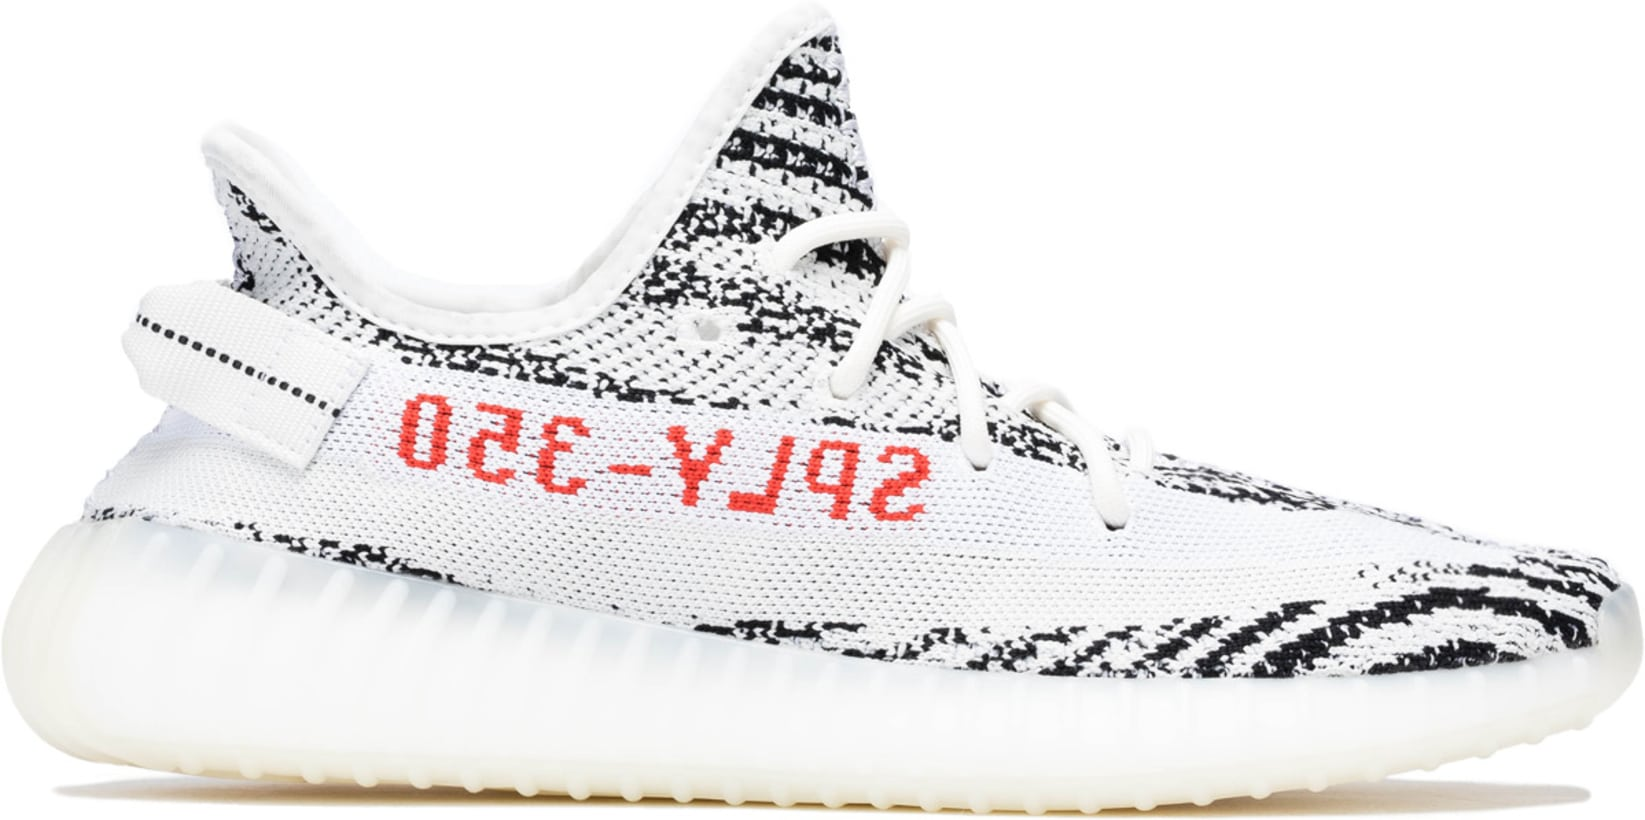 new style 66cf2 e6ee1 YEEZY - Yeezy Boost 350 V2 - White/Core Black/Red